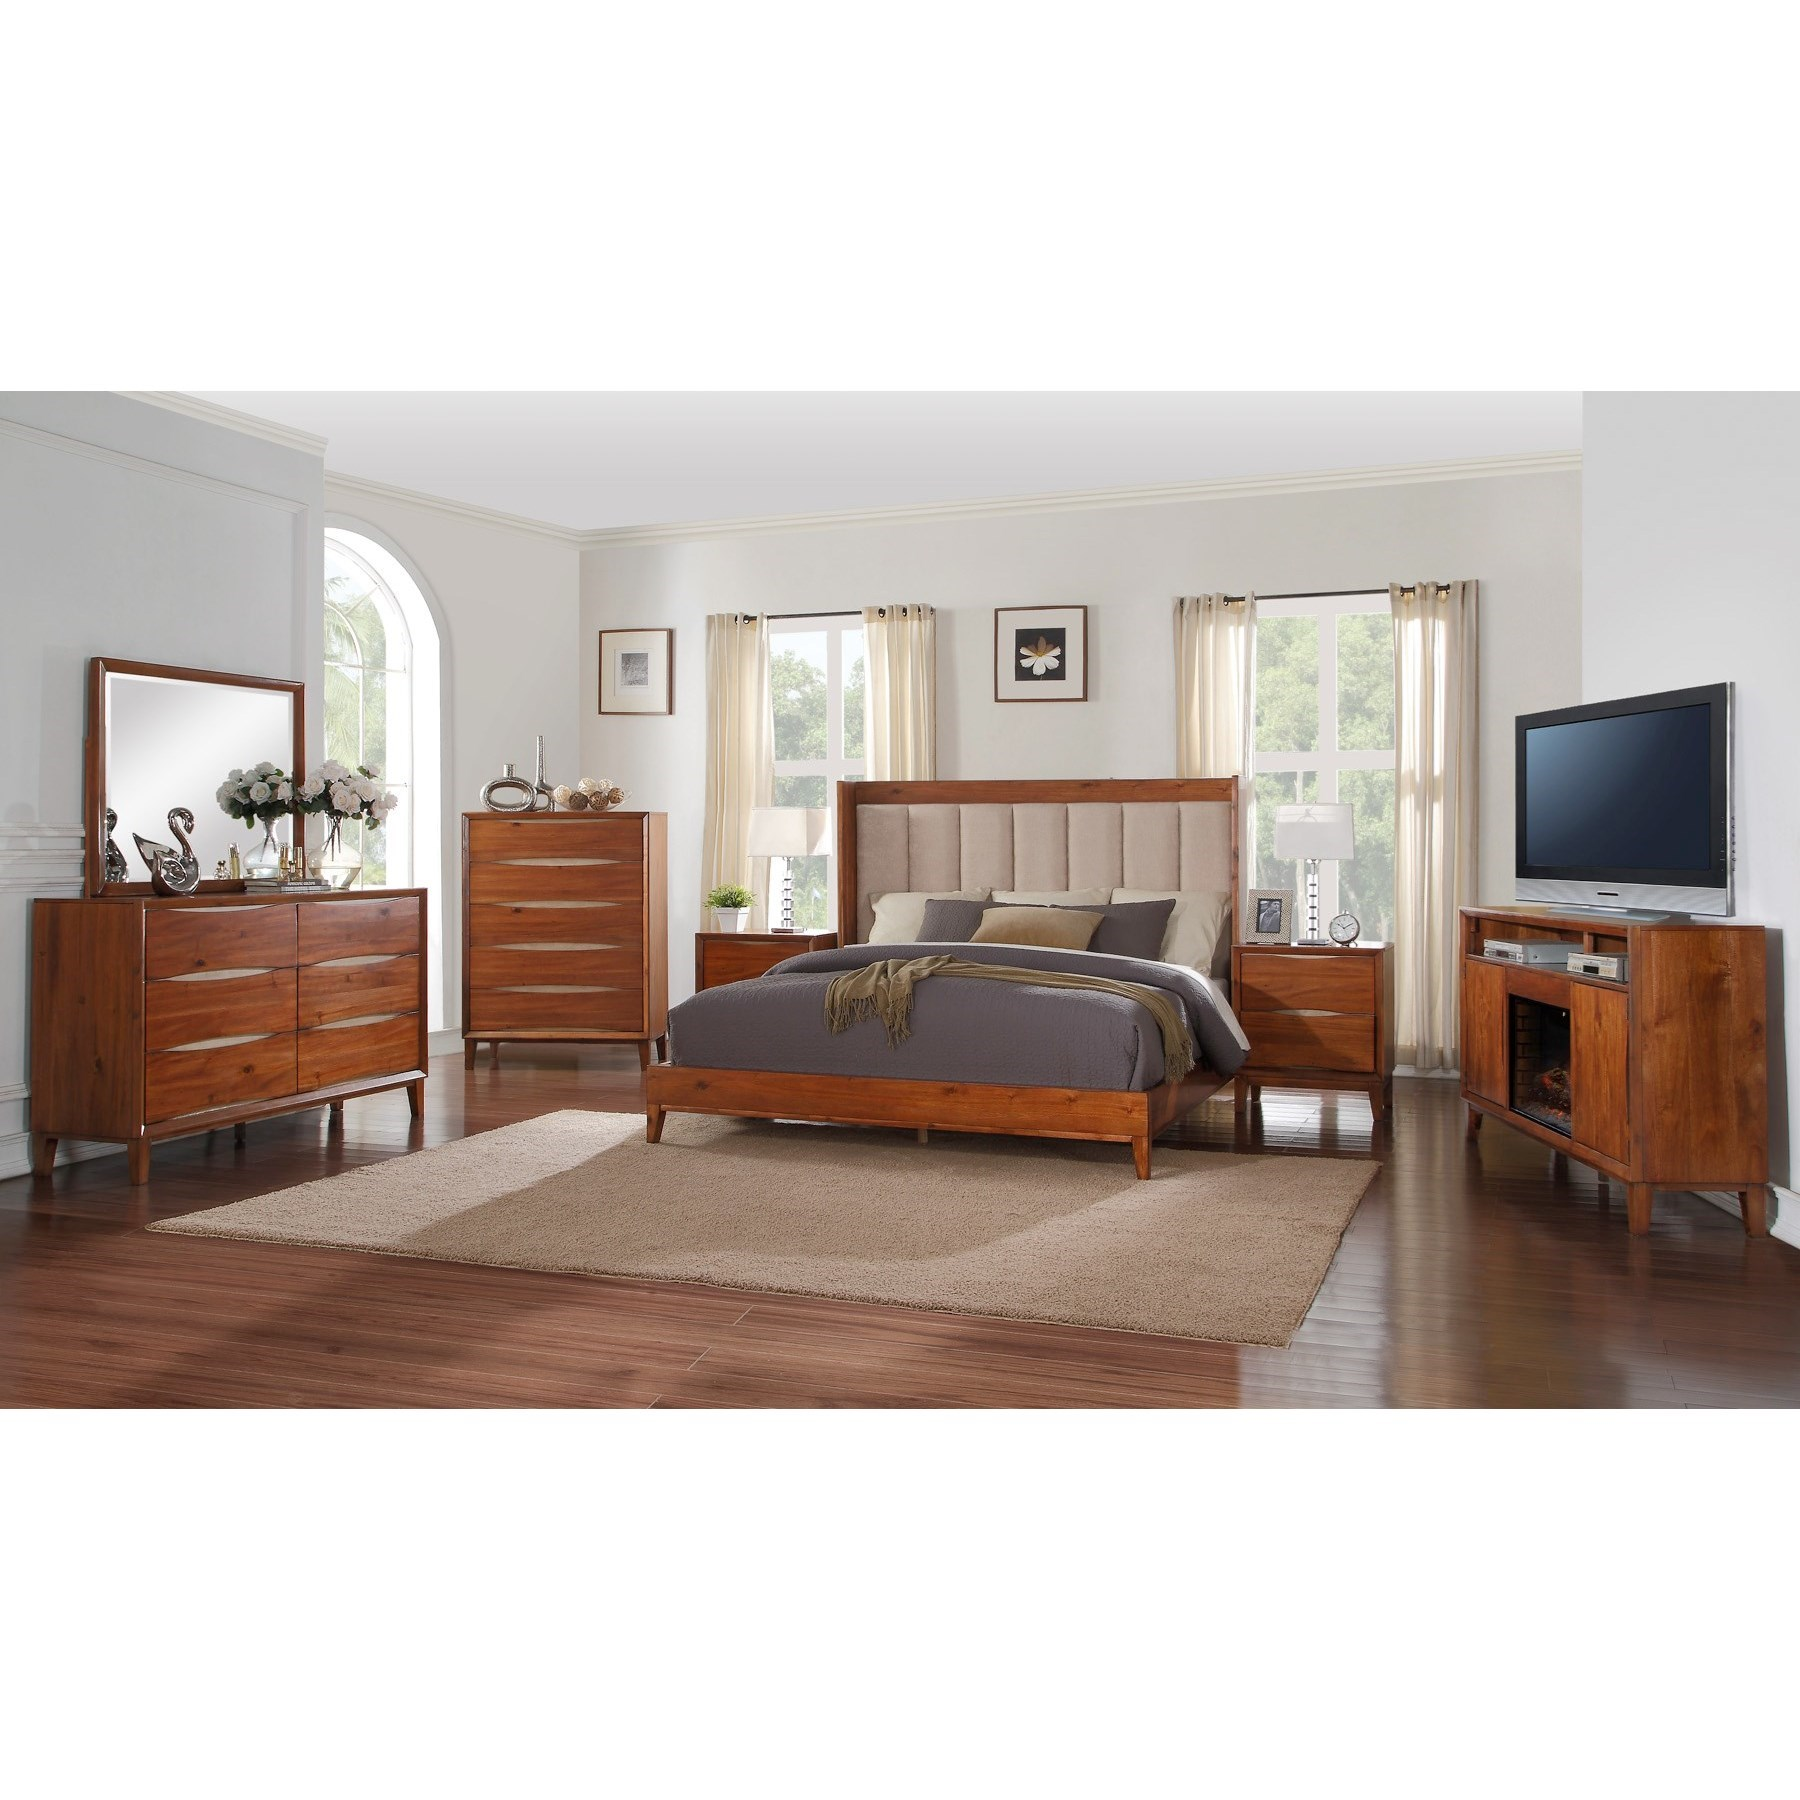 Legends Furniture Evo Queen Bedroom Group - Item Number: ZEVO Q Bedroom Group